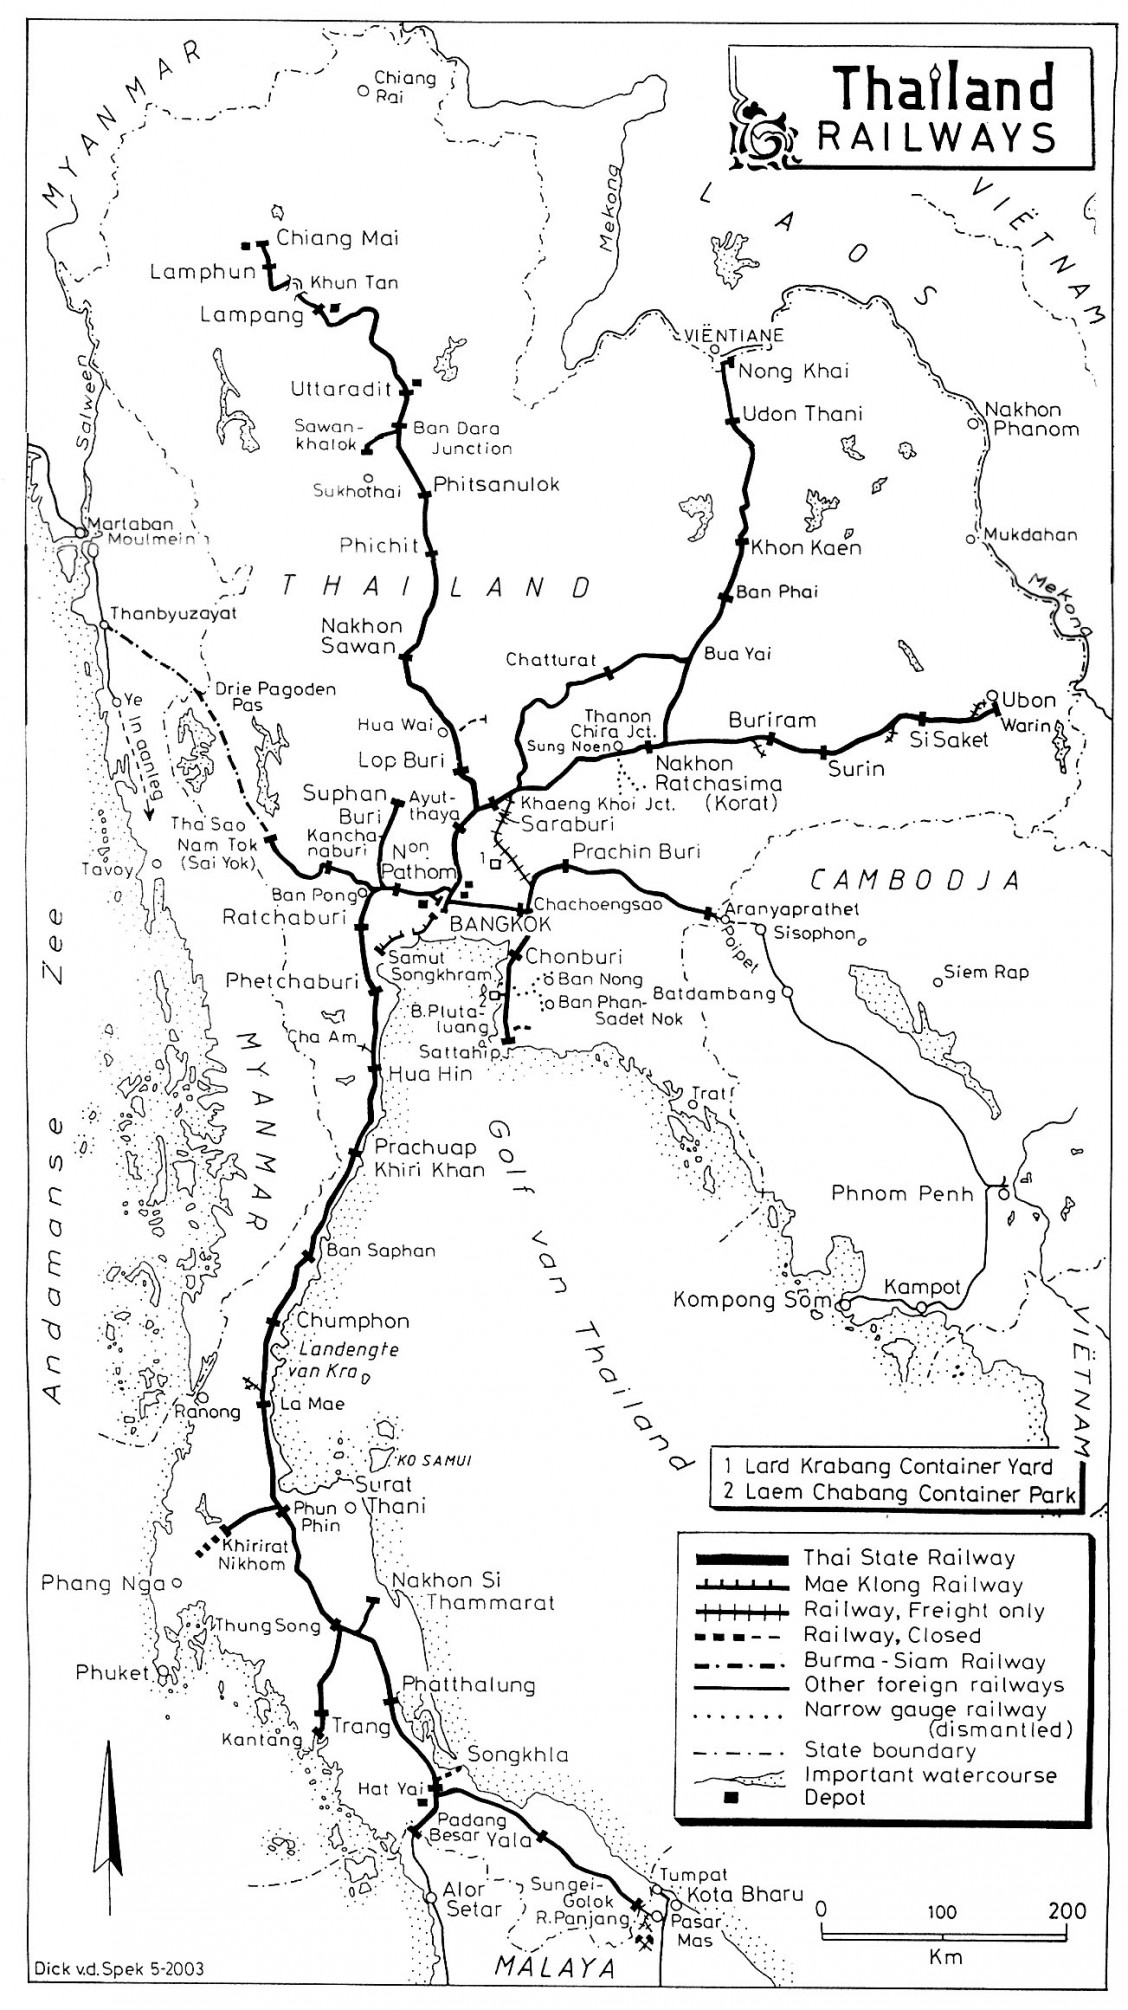 Thailand-Railroad-Map